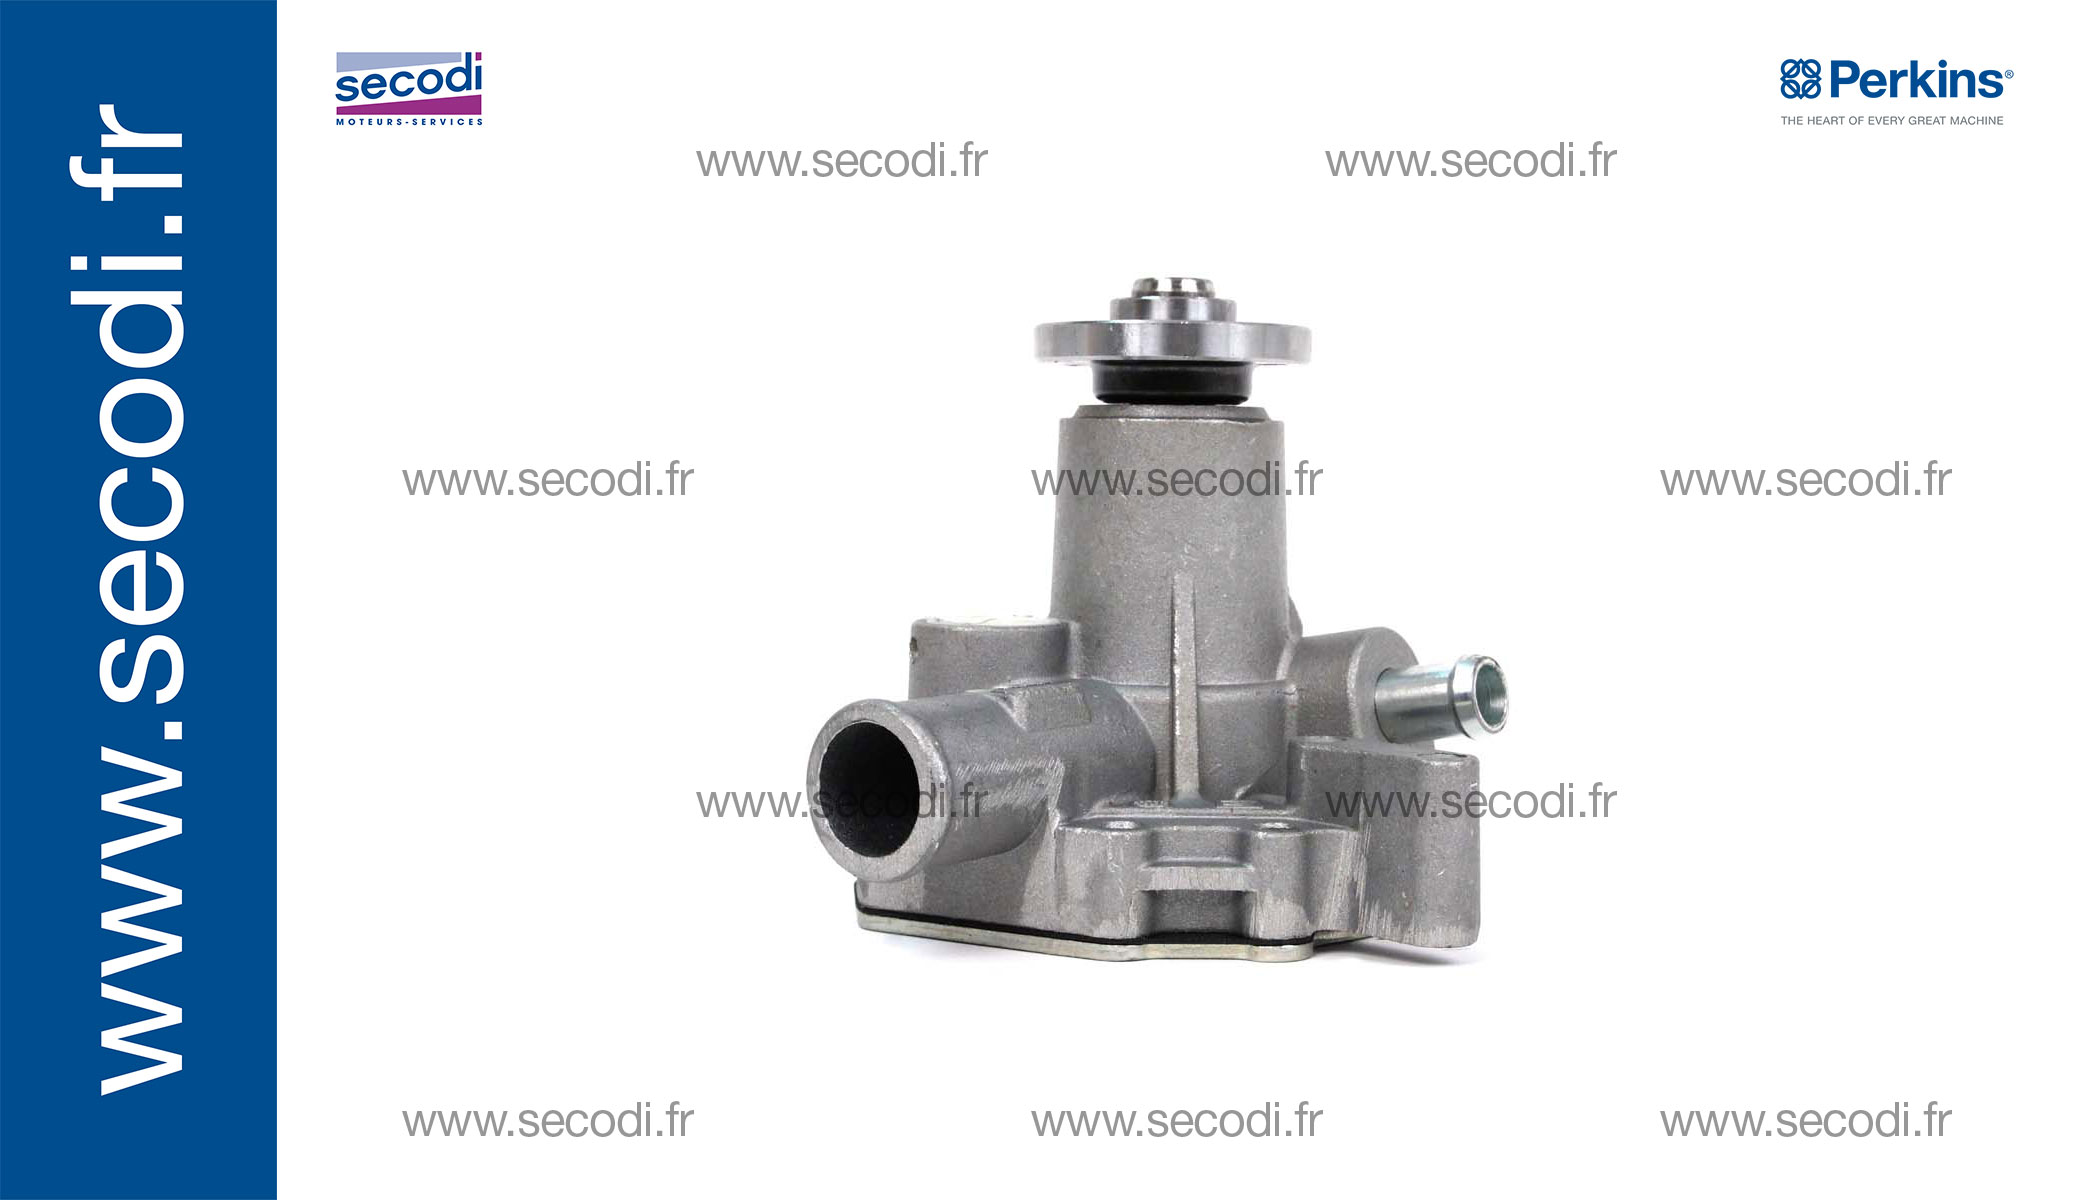 WATER PUMP perkins U45017961 · U45017961 · U45017961 · U45017961